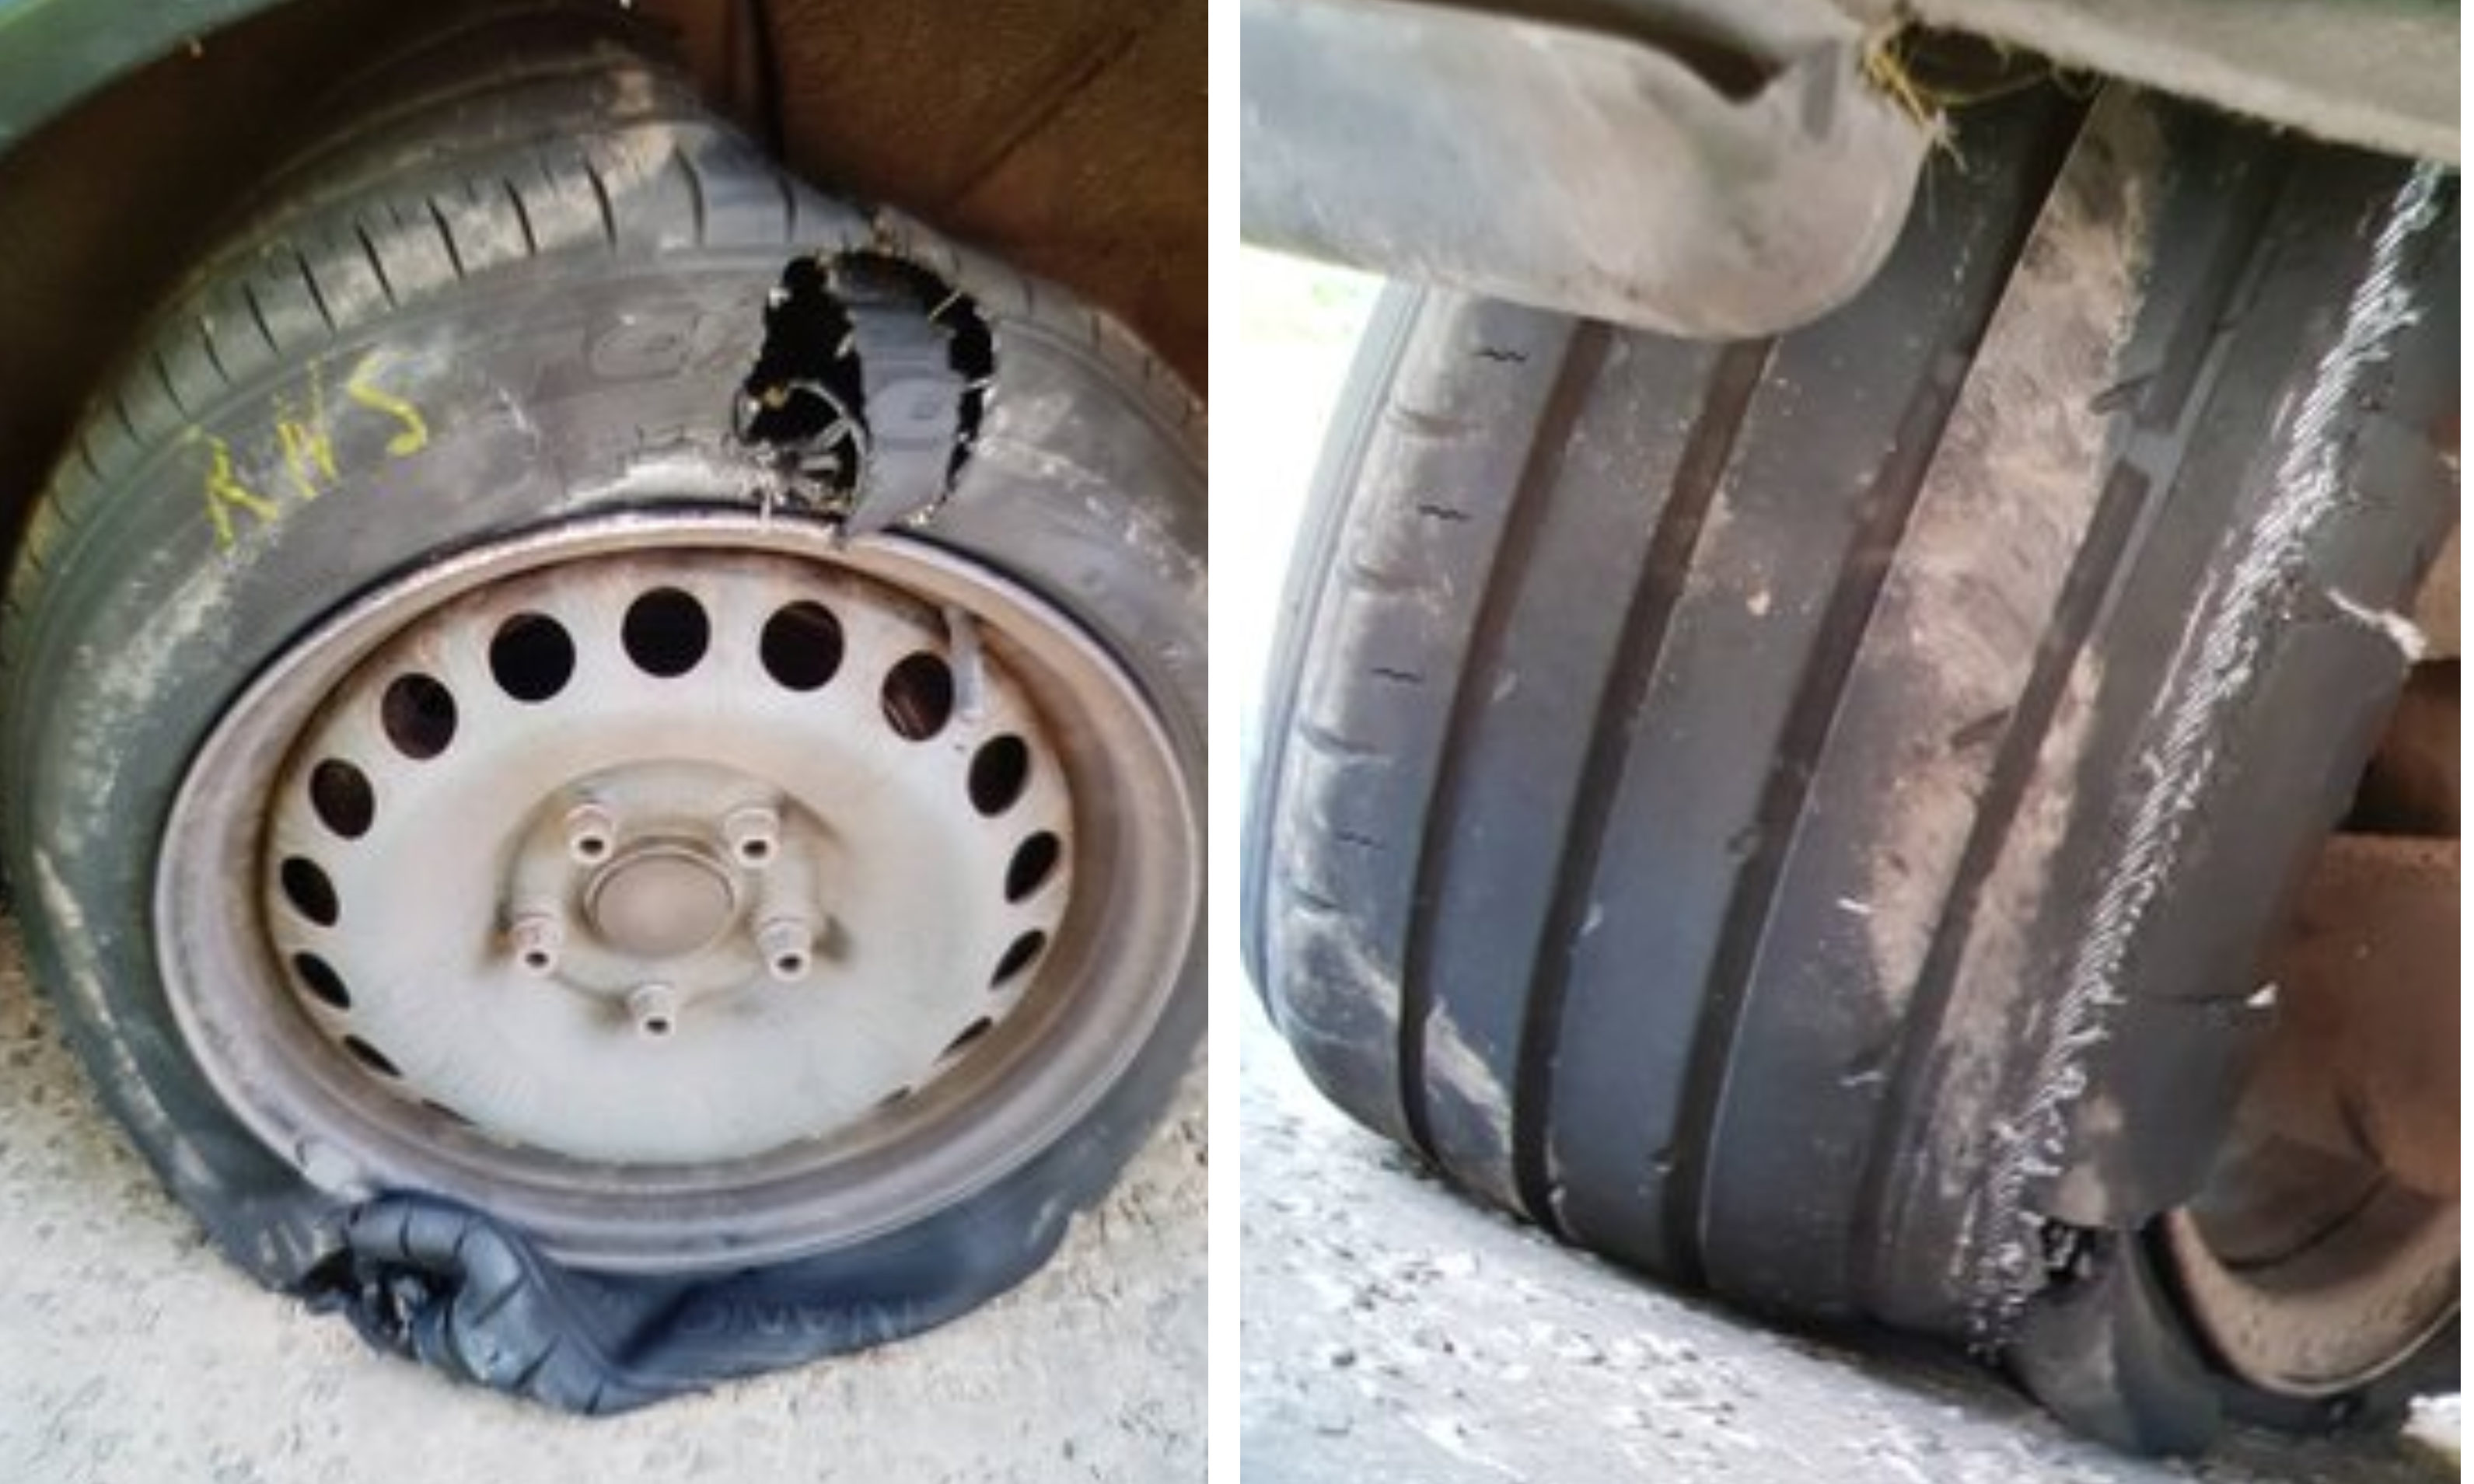 Two of the tyres on the vehicle, which was seized by police.